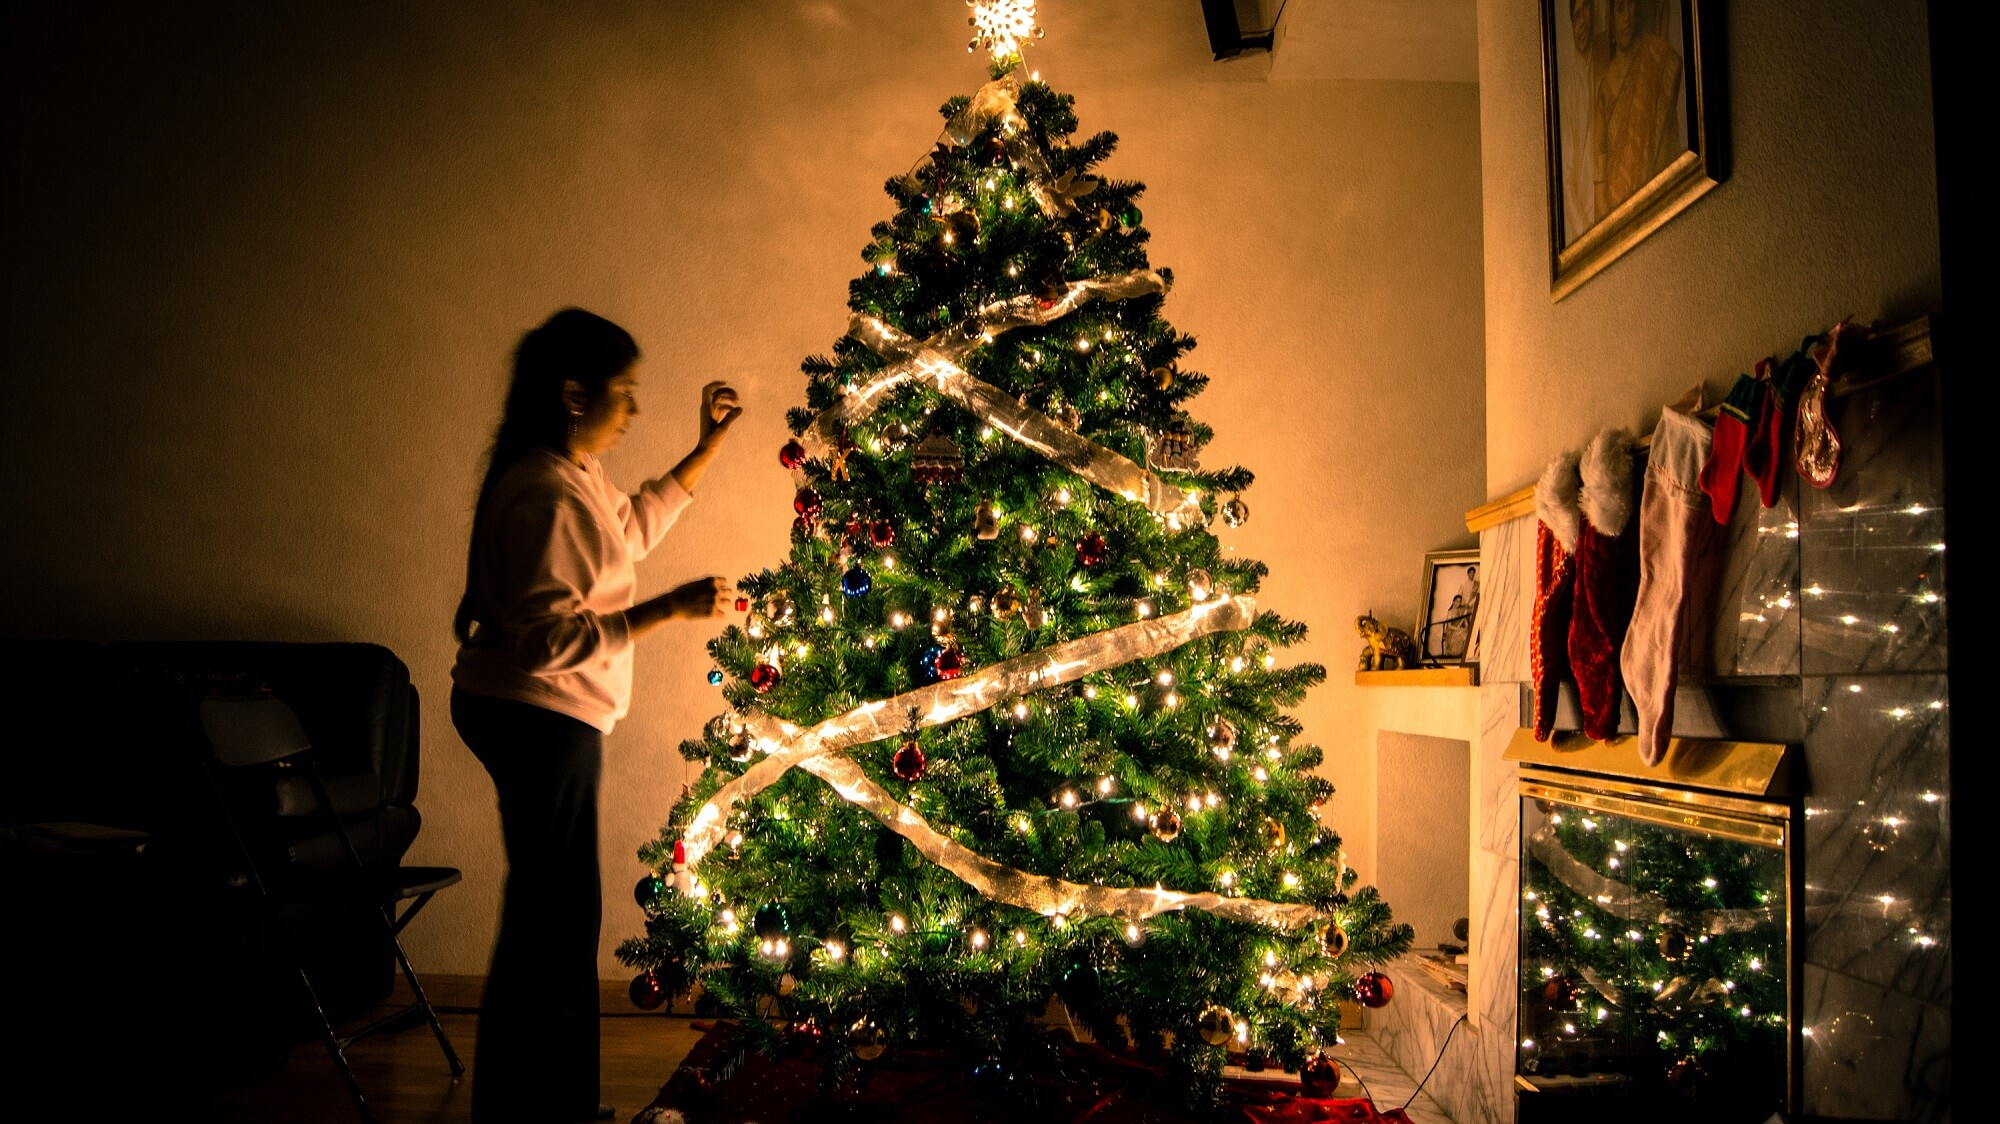 divorce during the holidays